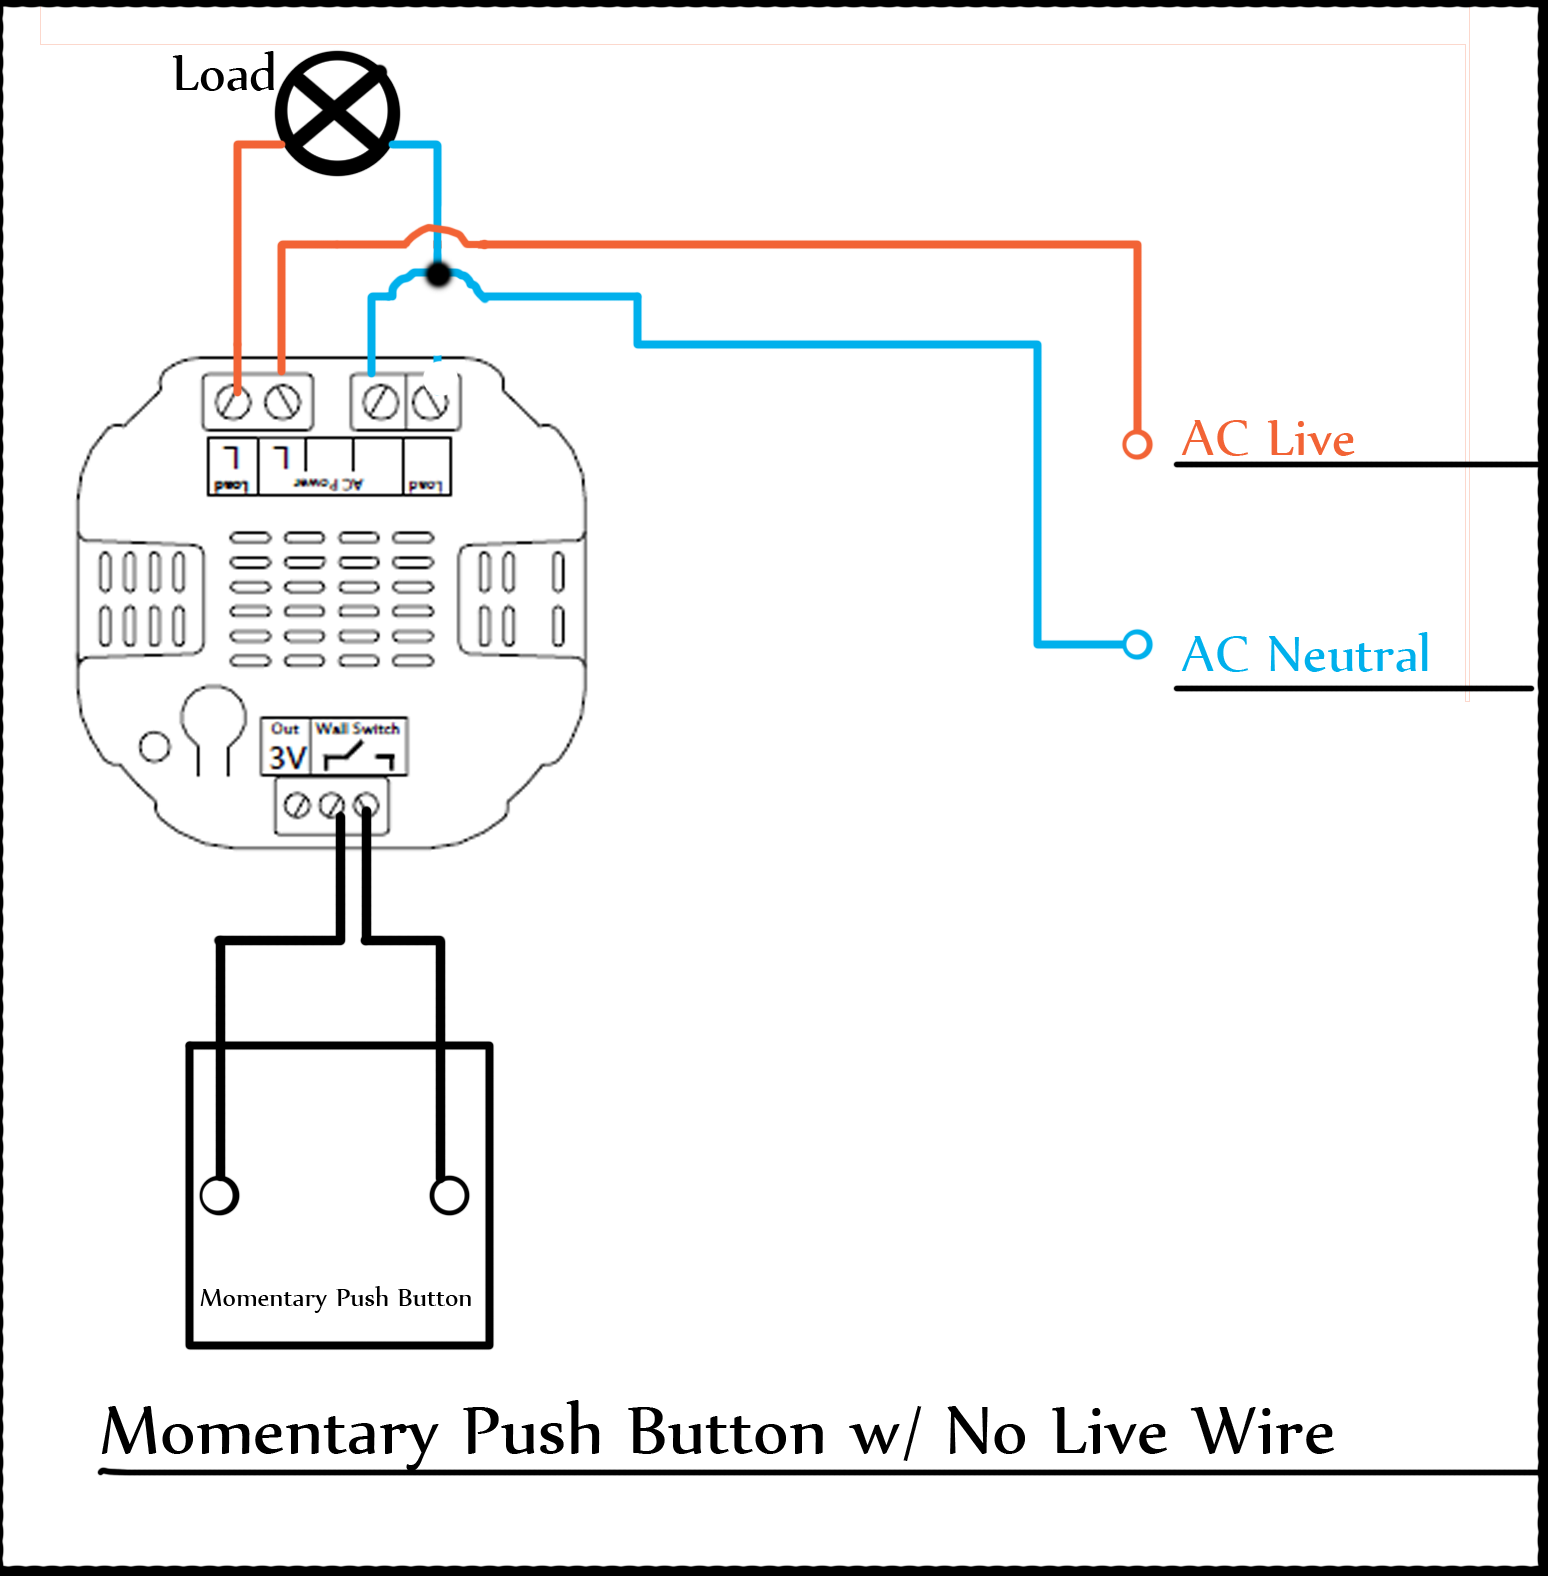 Touch Lamp Switch Wiring Diagram 32 Images Laser Circuit Page 2 Light Led Circuits Nextgr Photo 10 Source Sensor